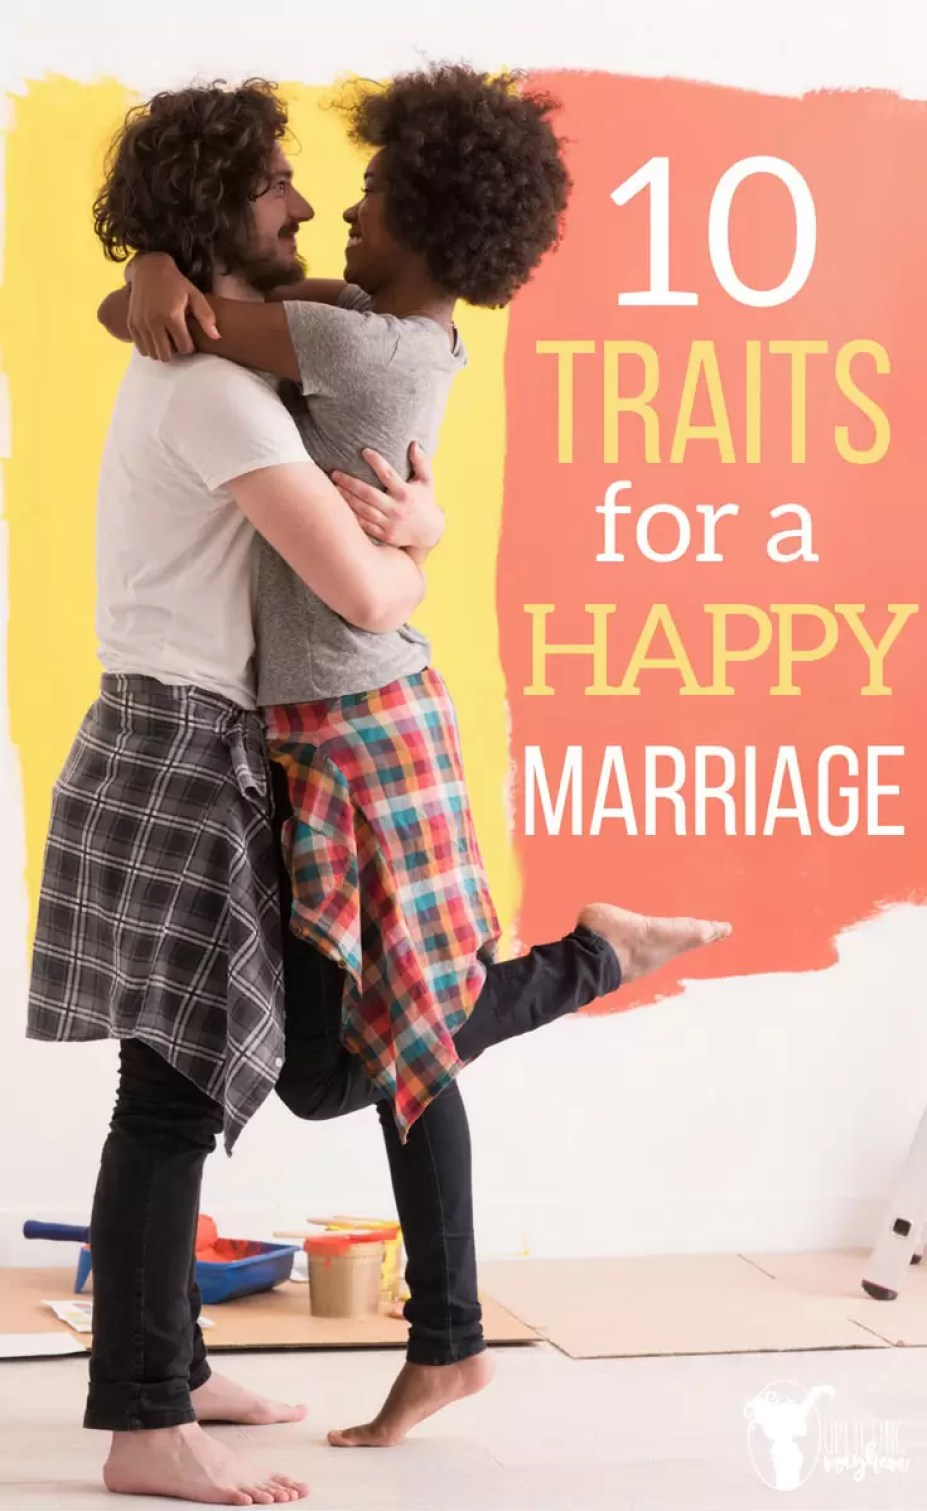 Happy married couples all have similar traits and habits! Discover these traits and tips to create your own happy marriage!